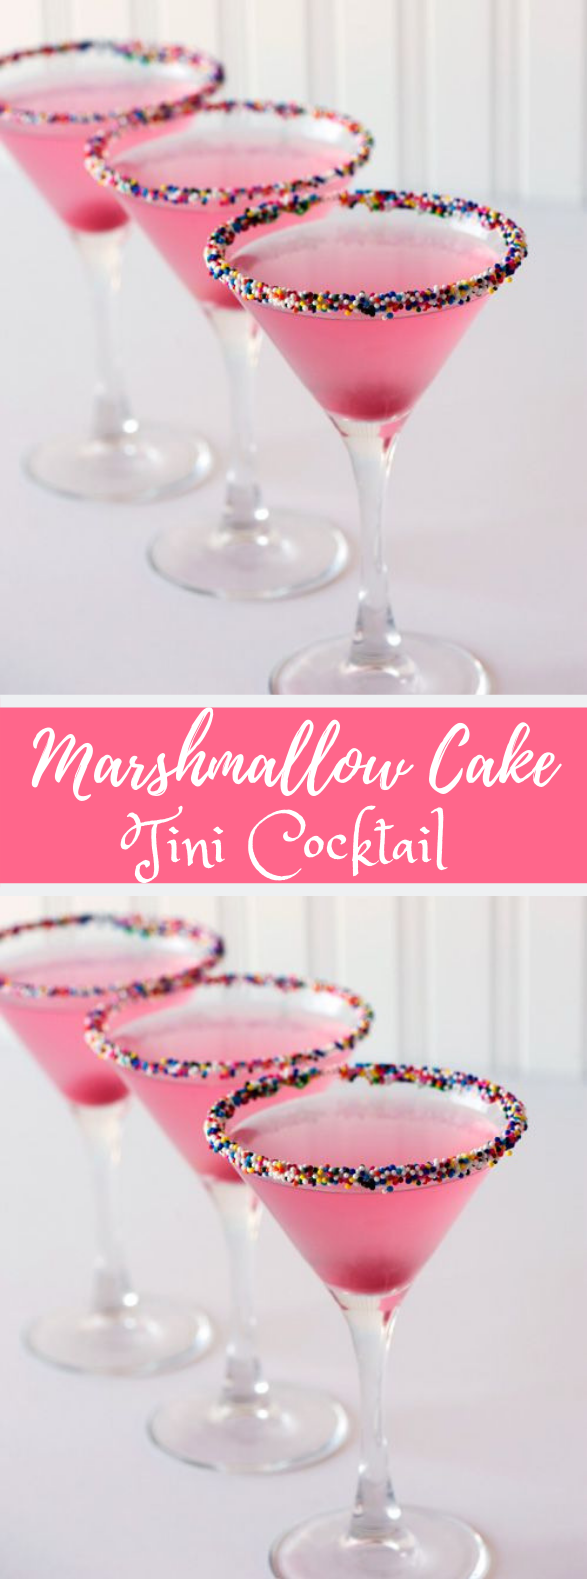 Marshmallow Cake-tini Cocktail #Drink #Party